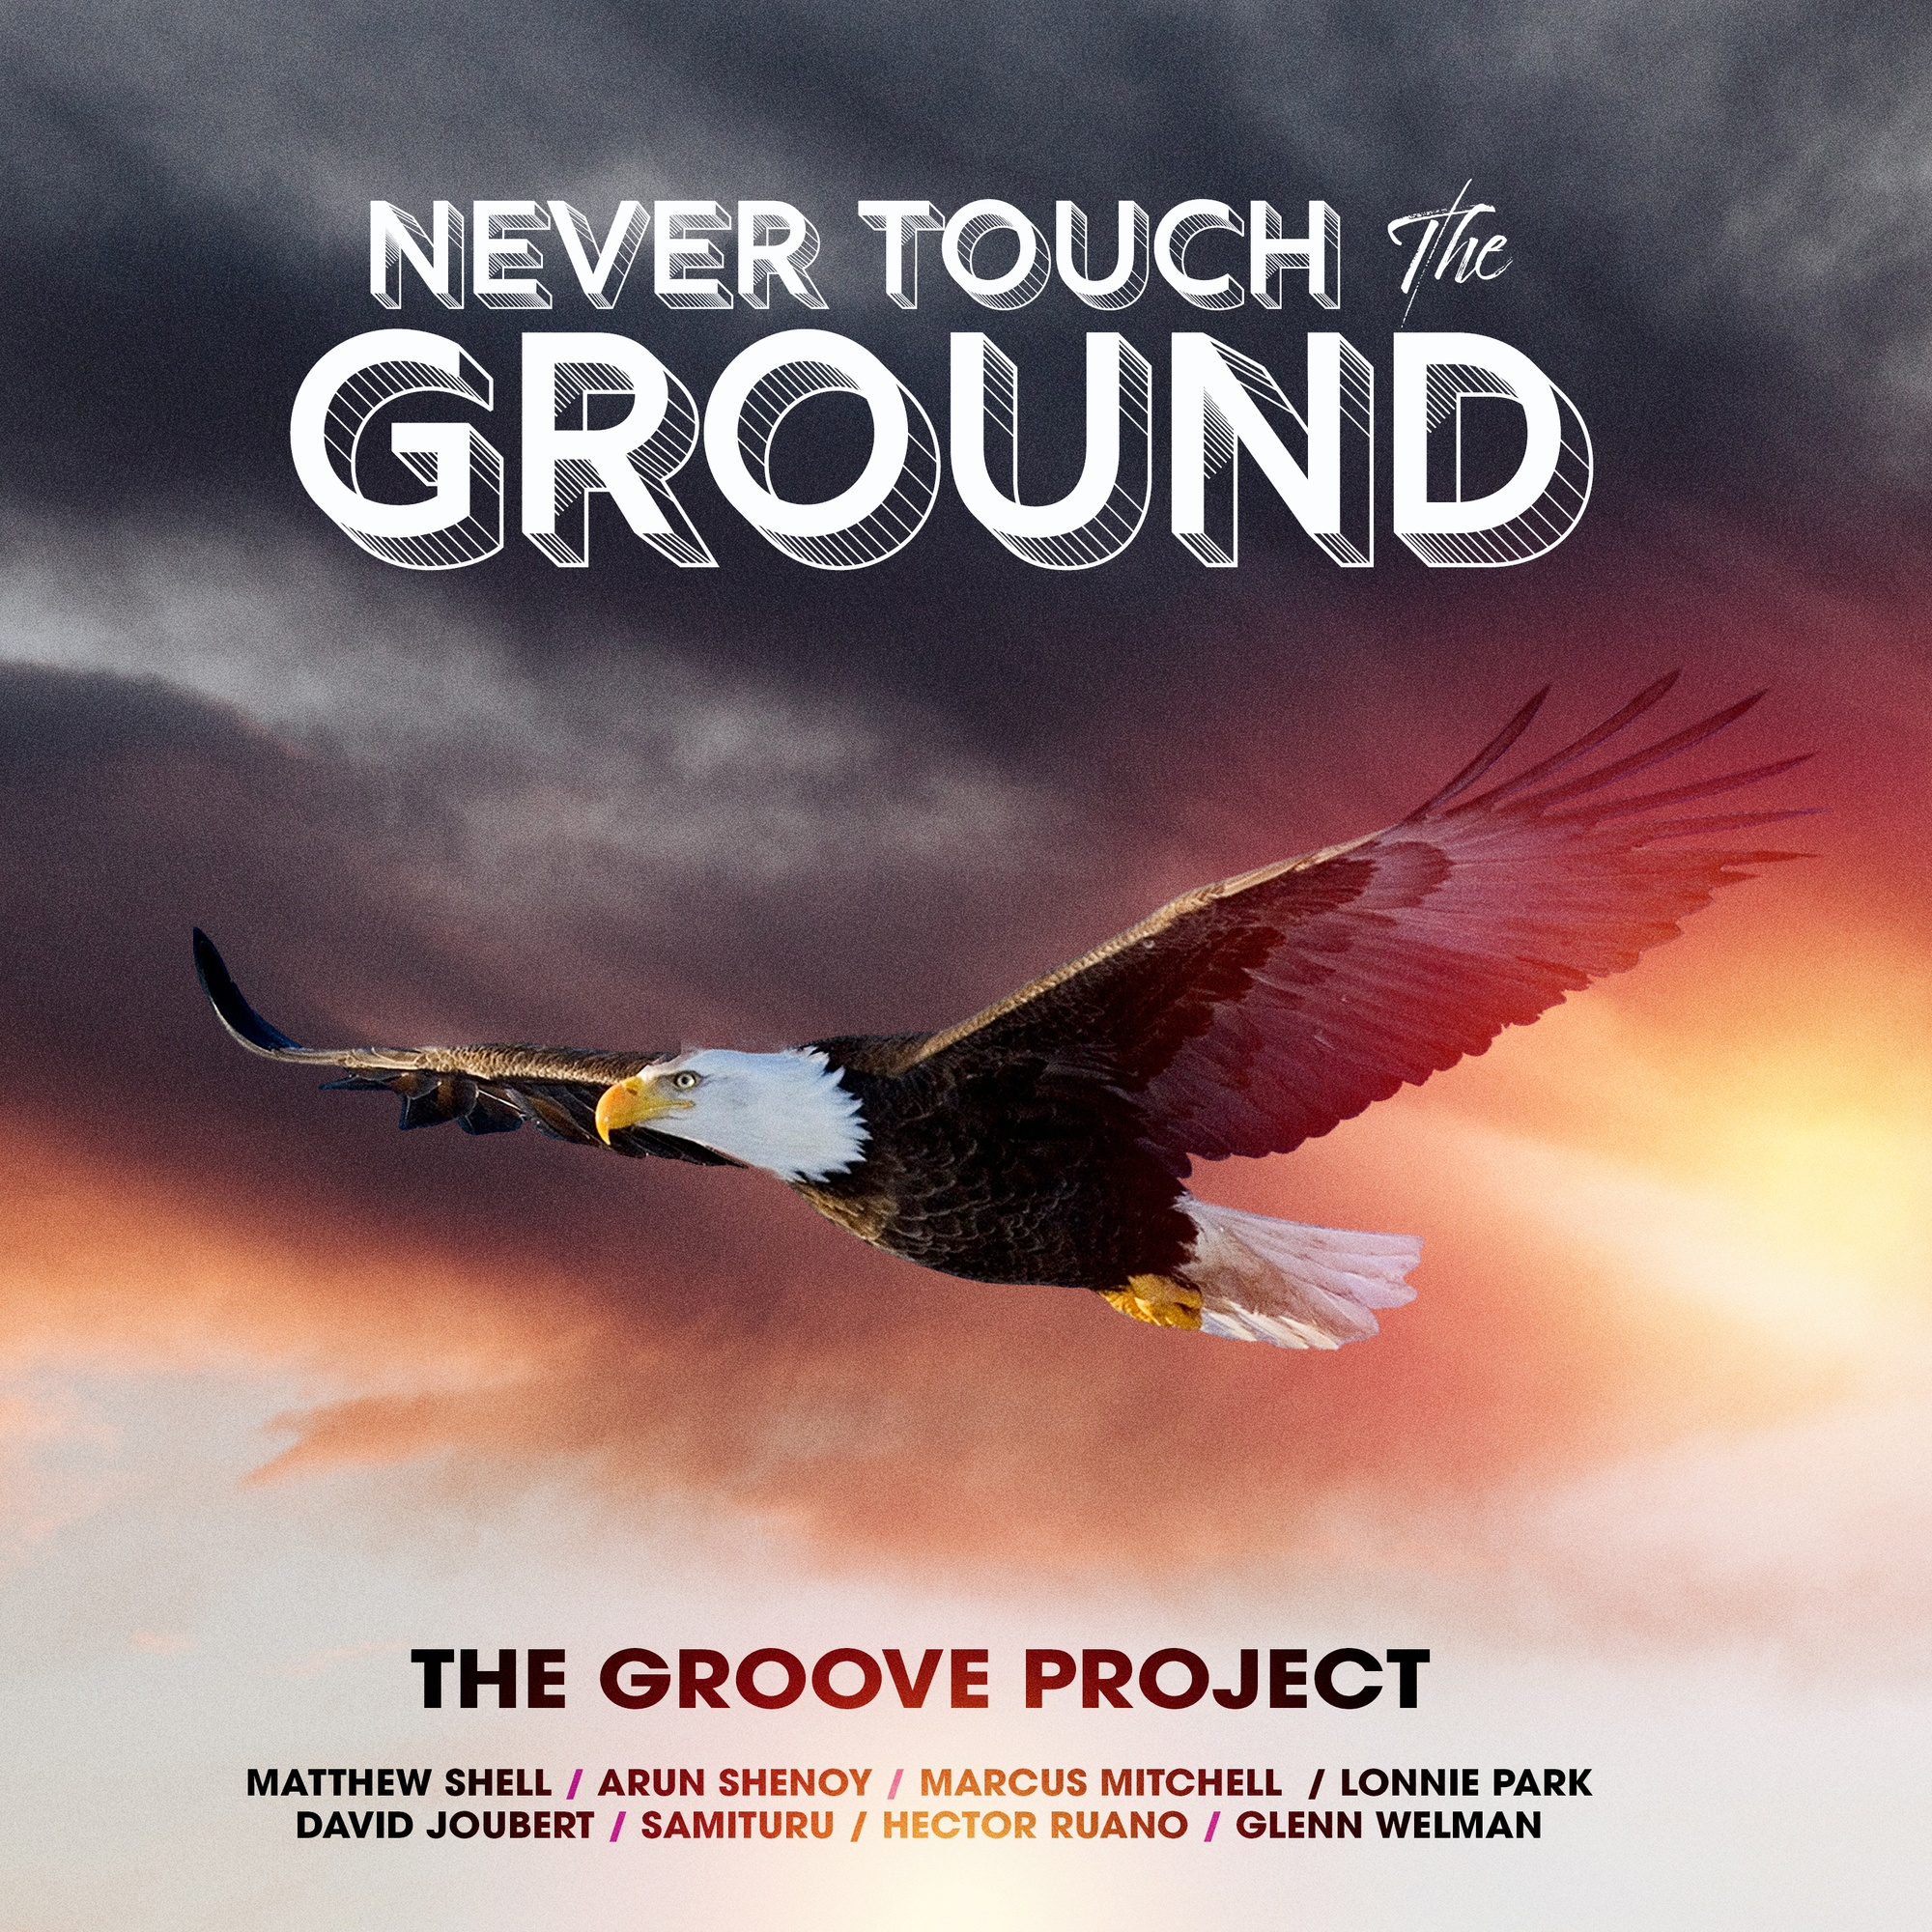 Never-Touch-the-Ground-Front-Cover-Art-2